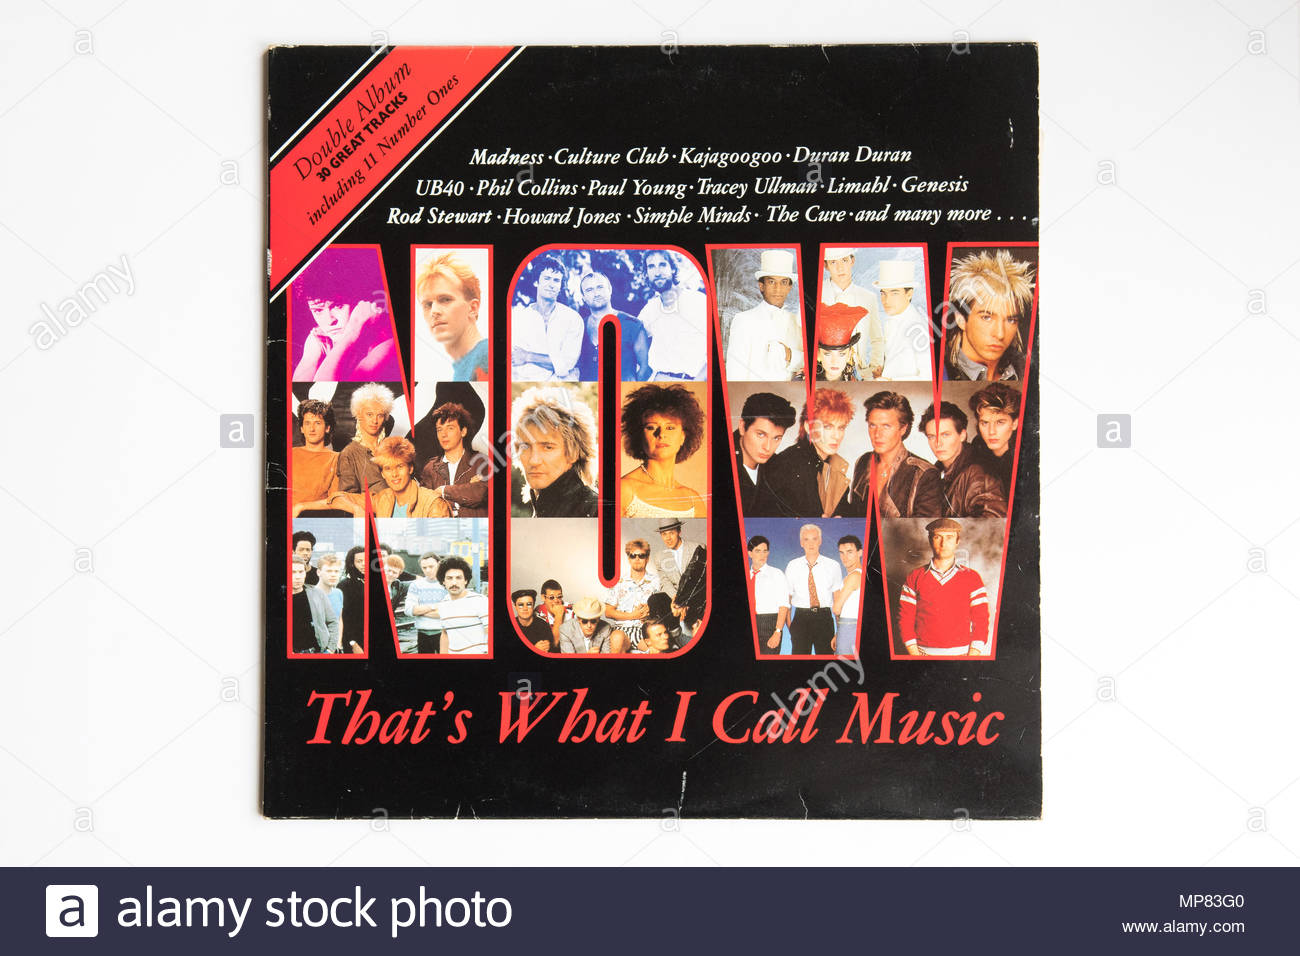 Now That's What I Call Music No1 - the first NOW album original vinyl album cover, released 1983 - Stock Image